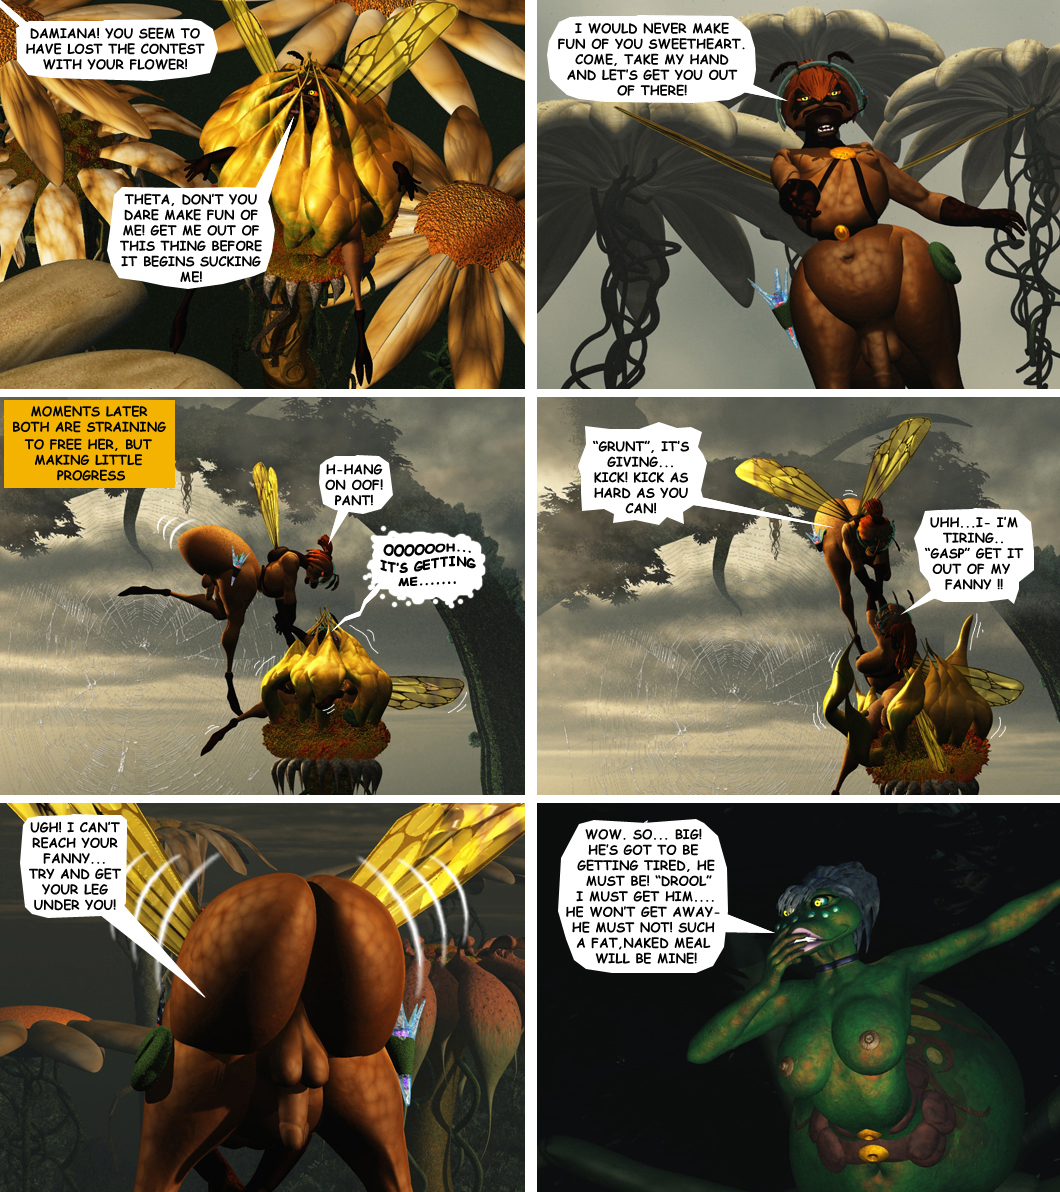 THE GAMES WE PLAY PAGE 3